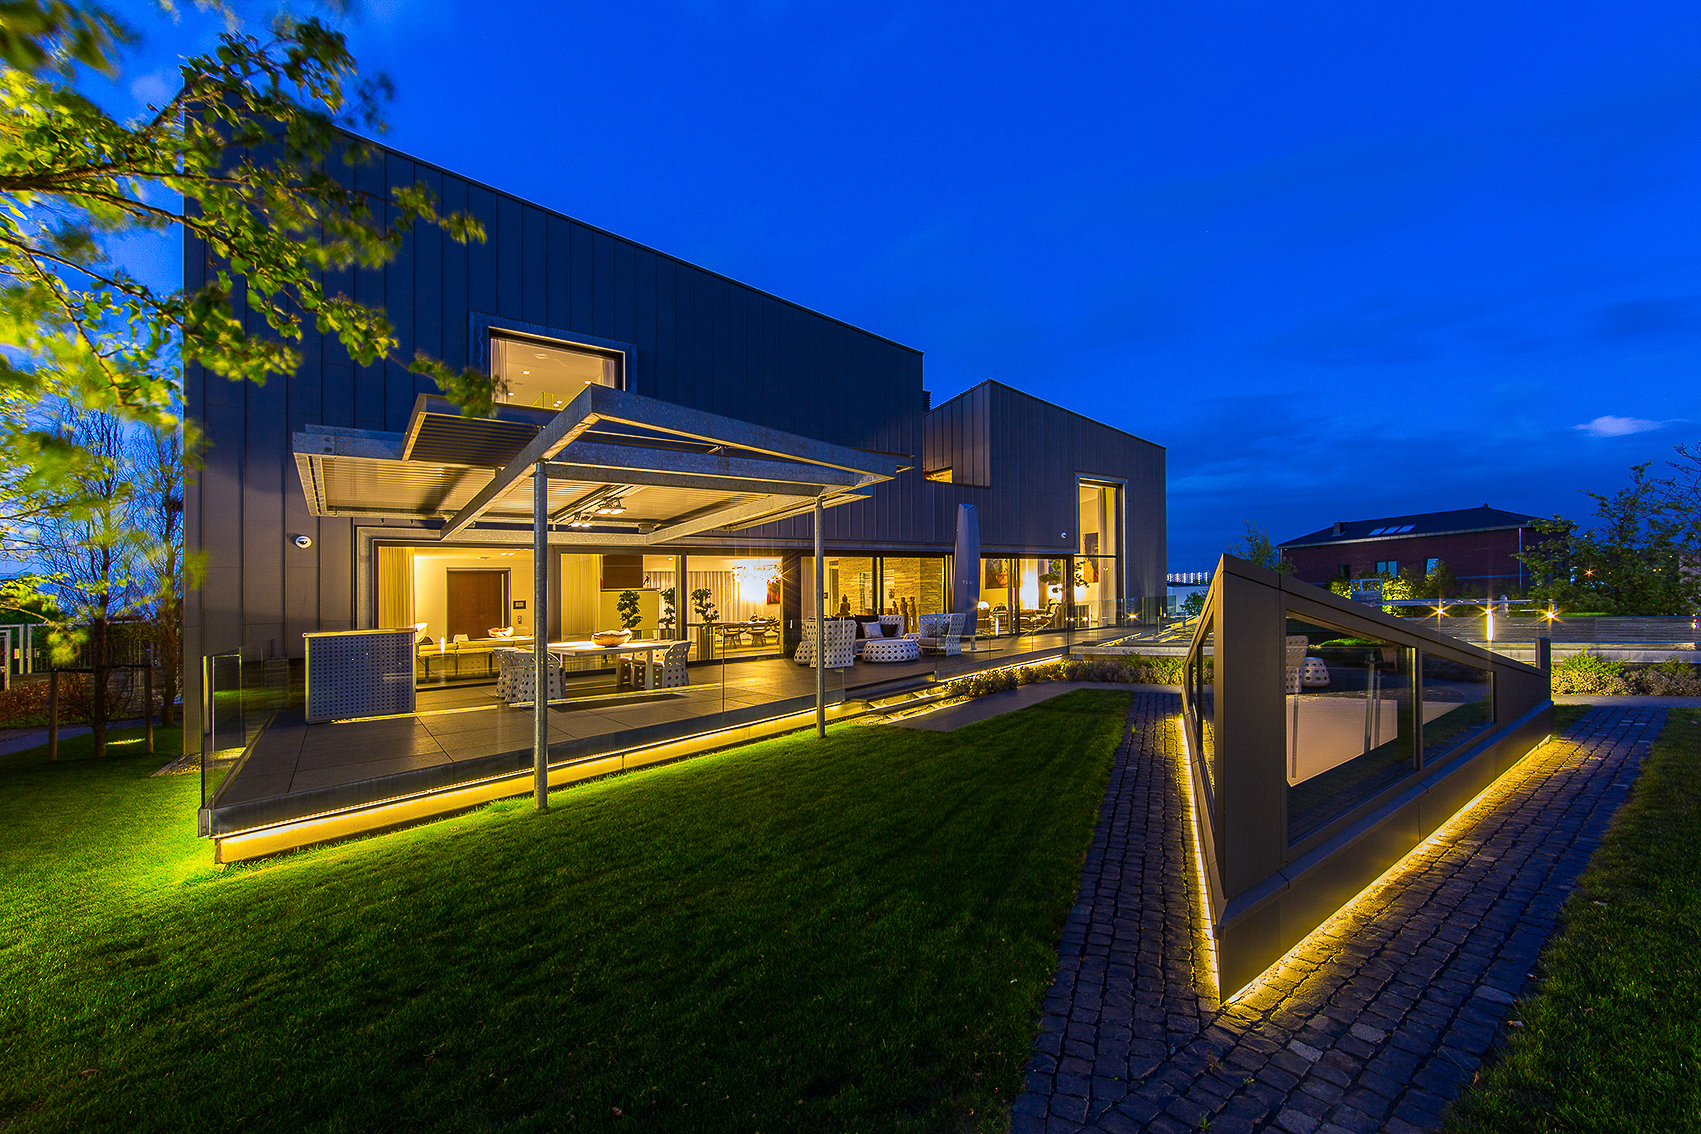 Single Family Home for Sale at Breathtaking Modern Villa Koningskaars 8, Heerlen, Limburg, 6418 PR Netherlands